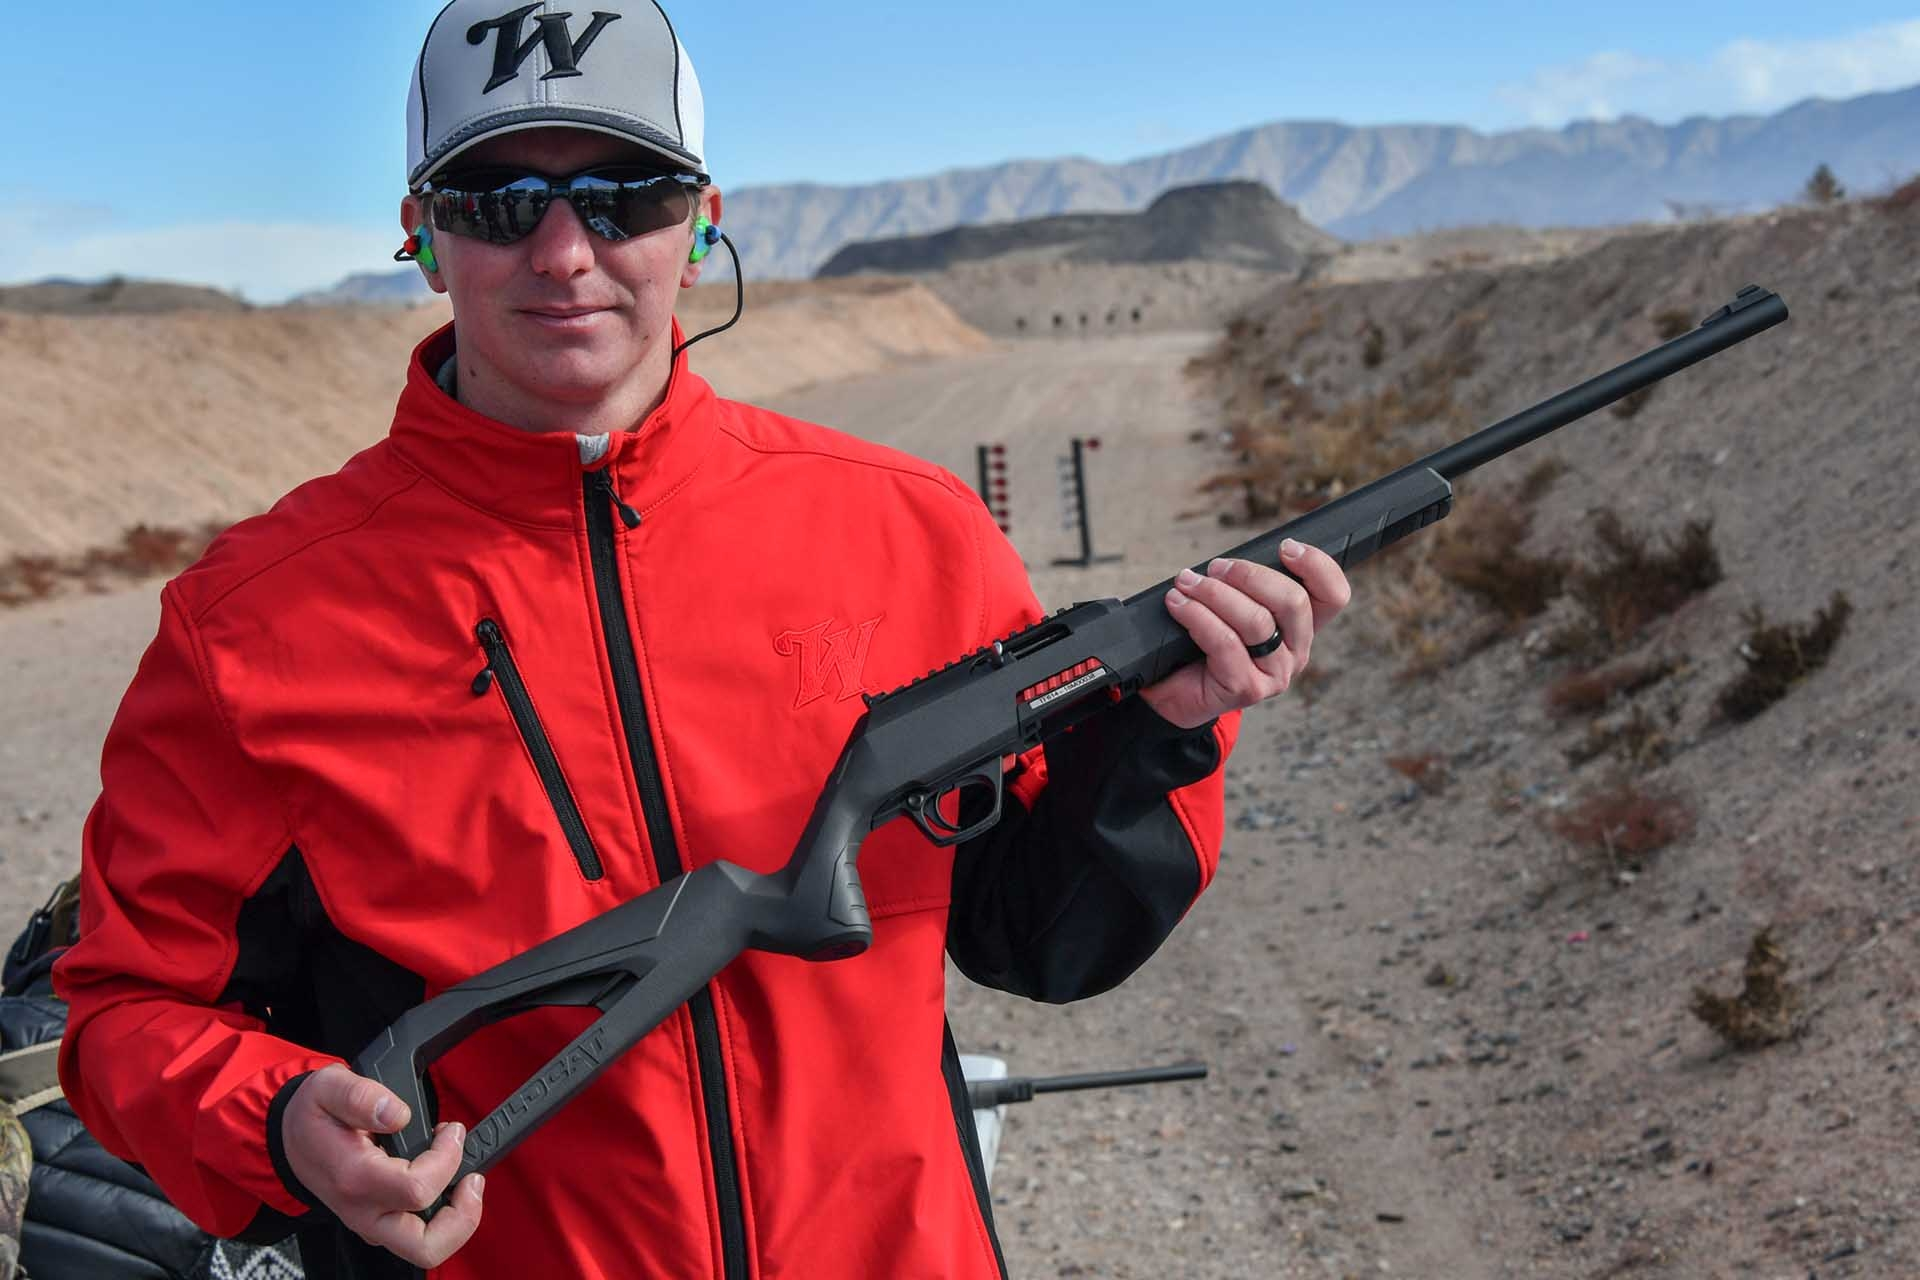 winchester: Wildcat .22 LR autoloader rifle: technology & fun from Winchester!